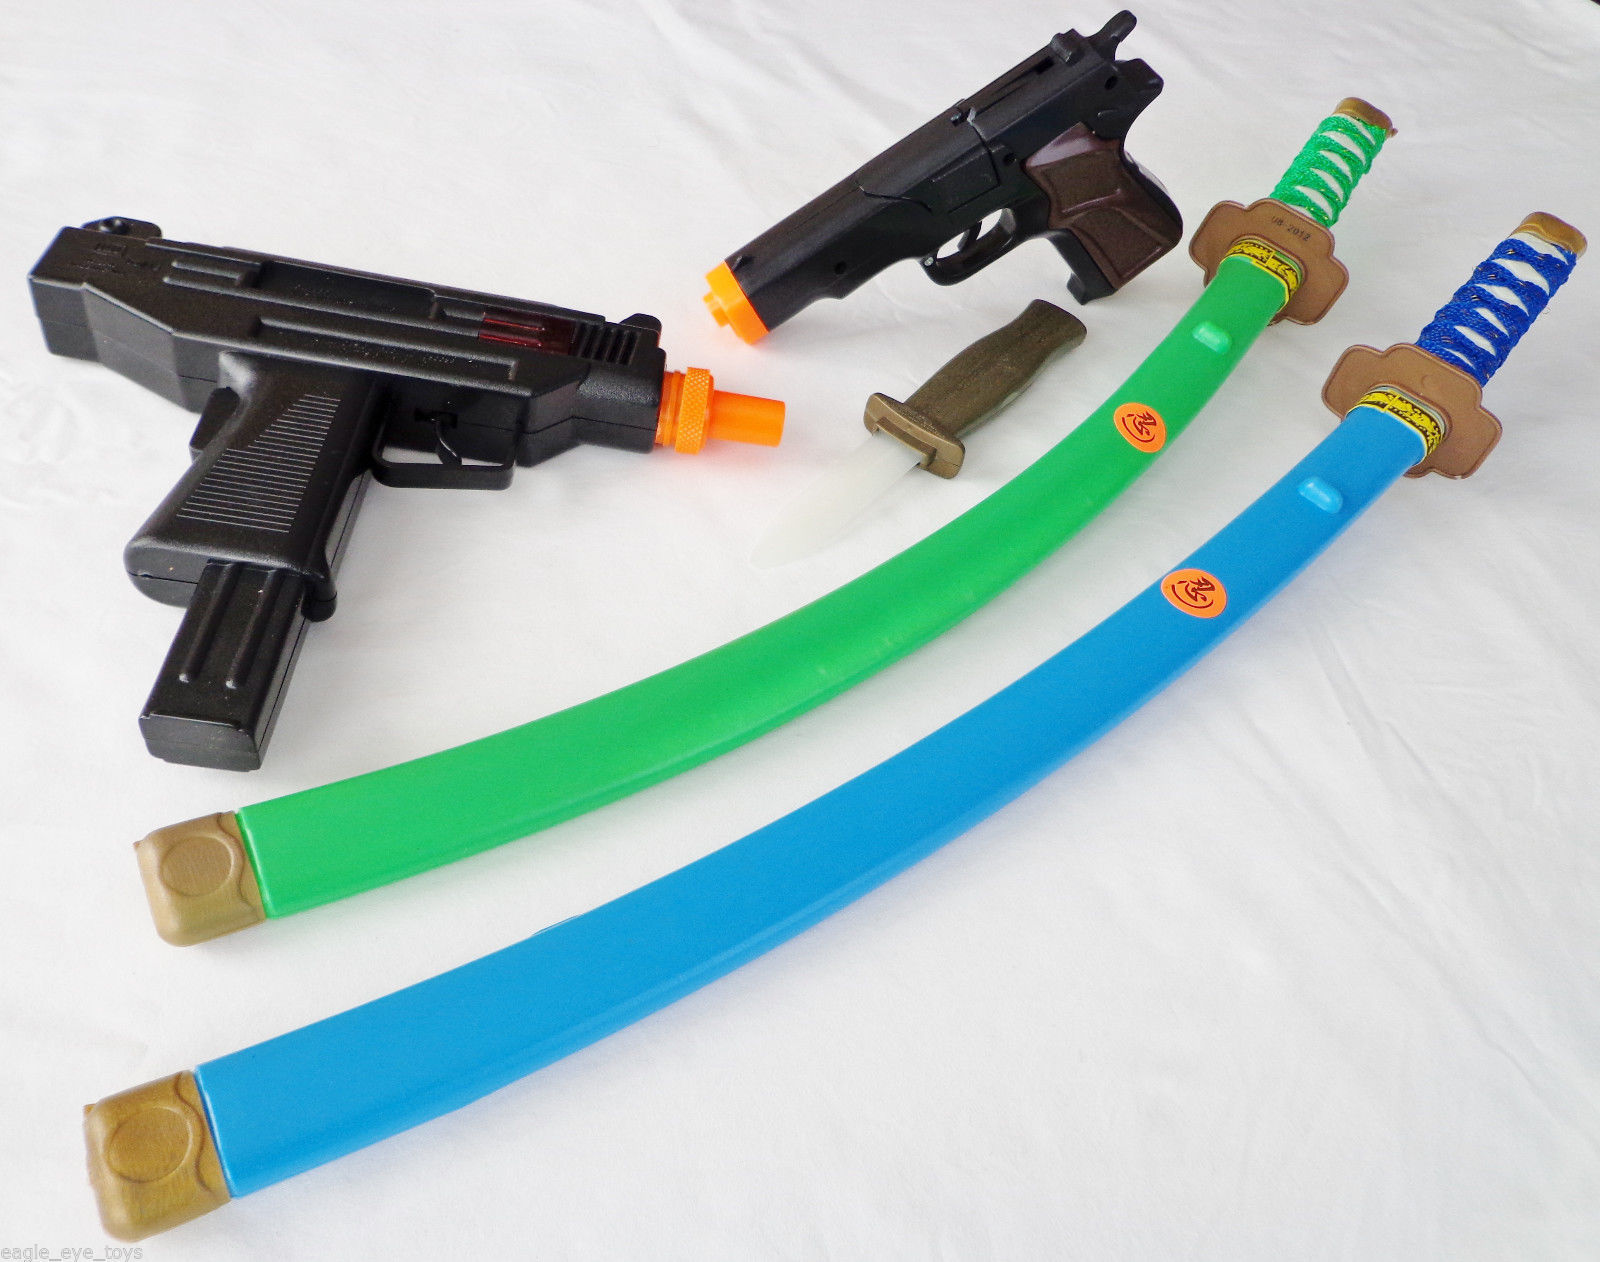 Toy Swords And Guns : Toy uzi machine gun black mm cap guns katana ninja